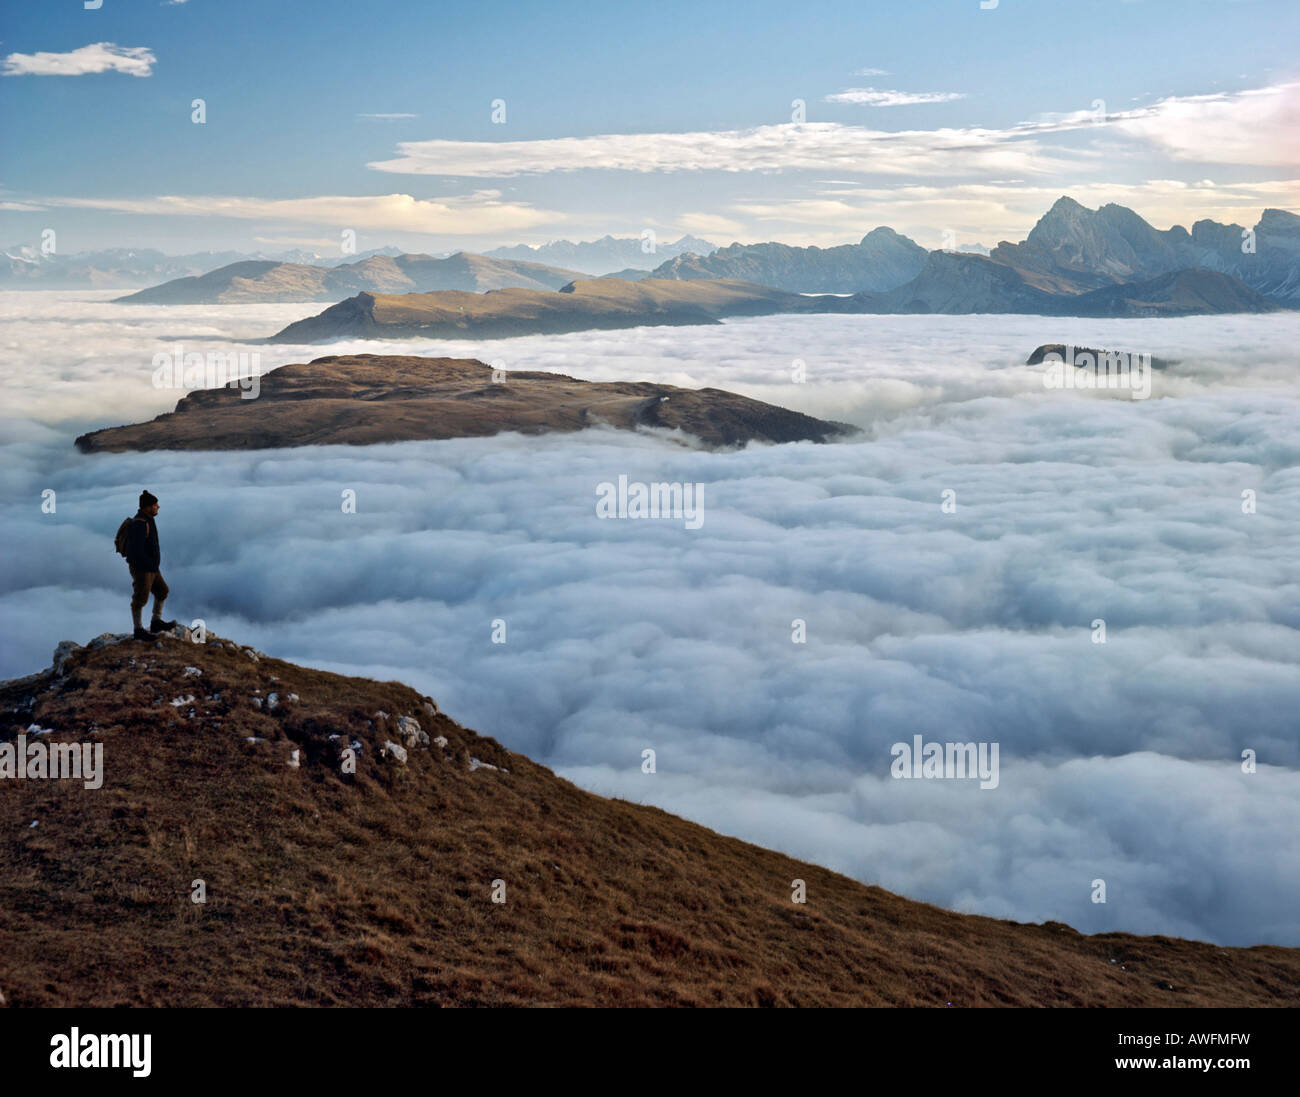 View from the Schlern Plateau toward the Puflatsch and Geislergruppe Ranges, Dolomites, South Tirol, Italy, Europe - Stock Image